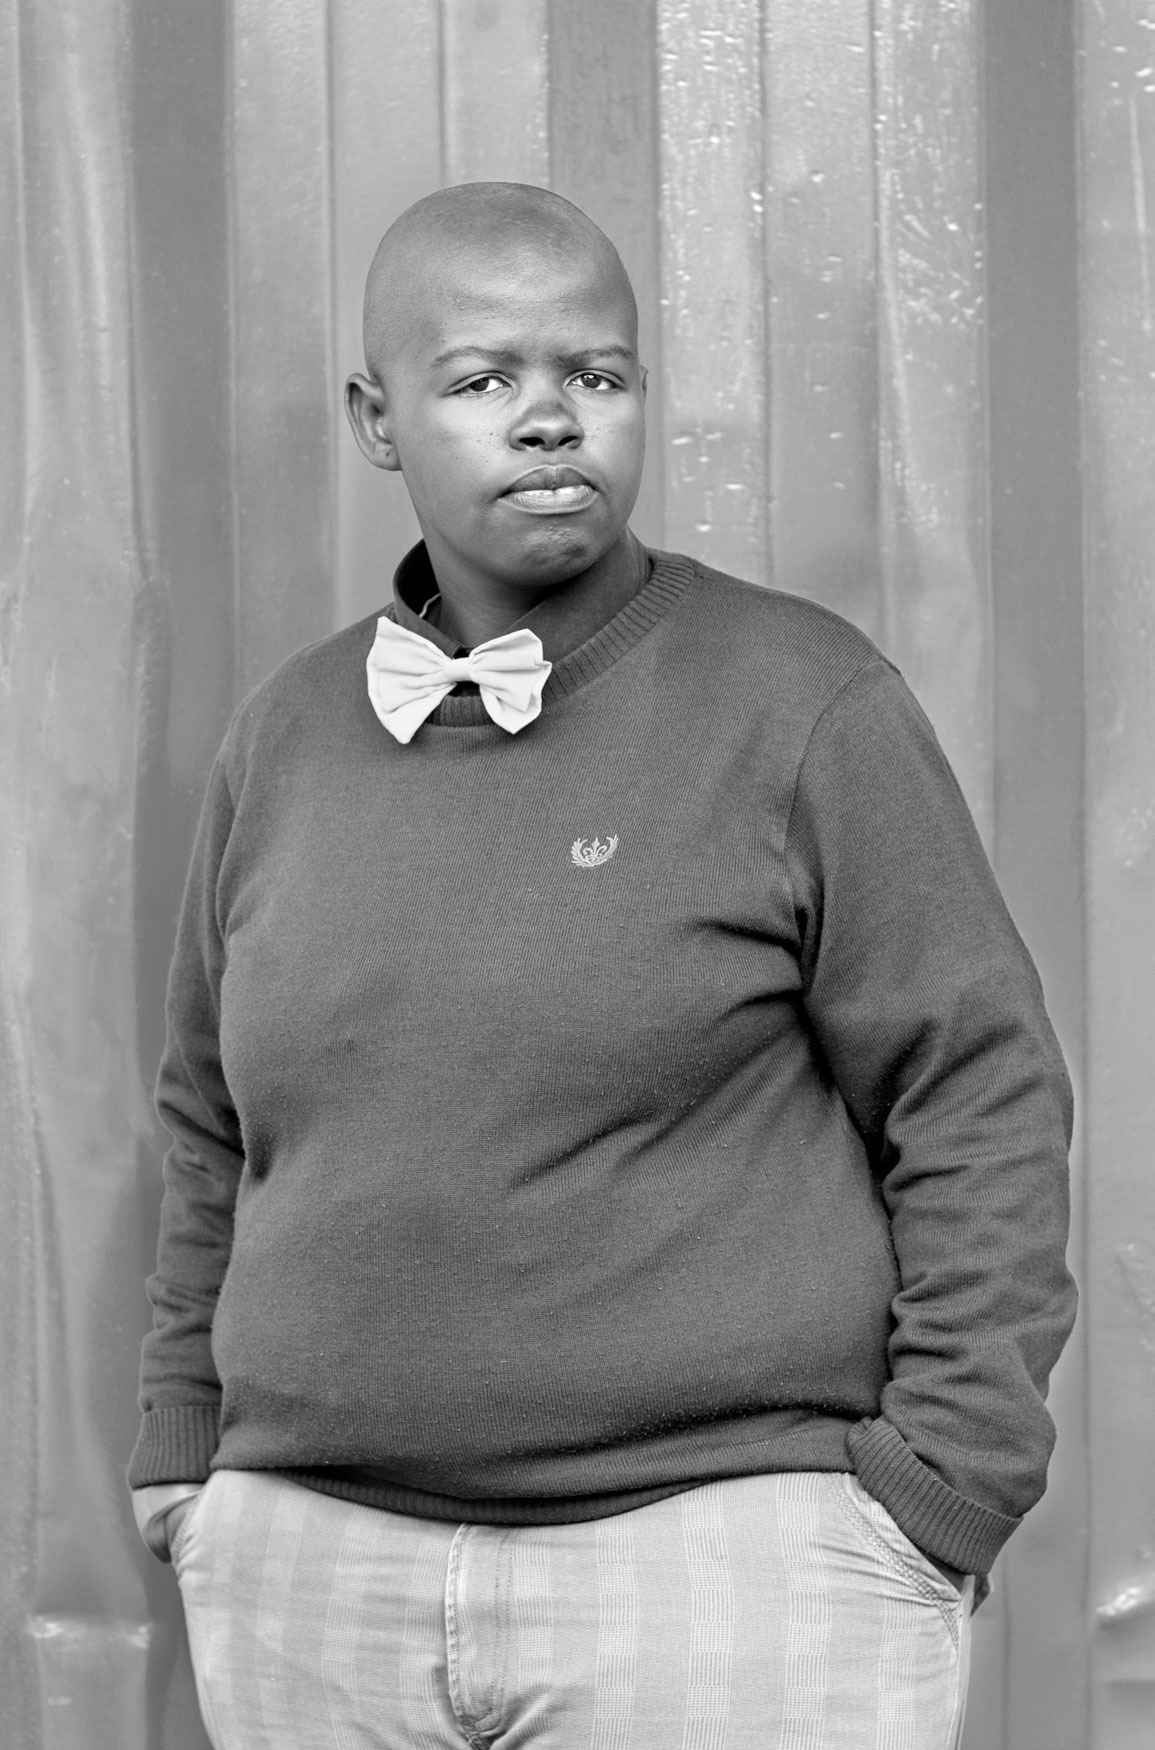 Lungile Cleo Dladla, Kwa-Thema Community Hall Springs, Johannesburg. From the series Faces and Phases, 2011.